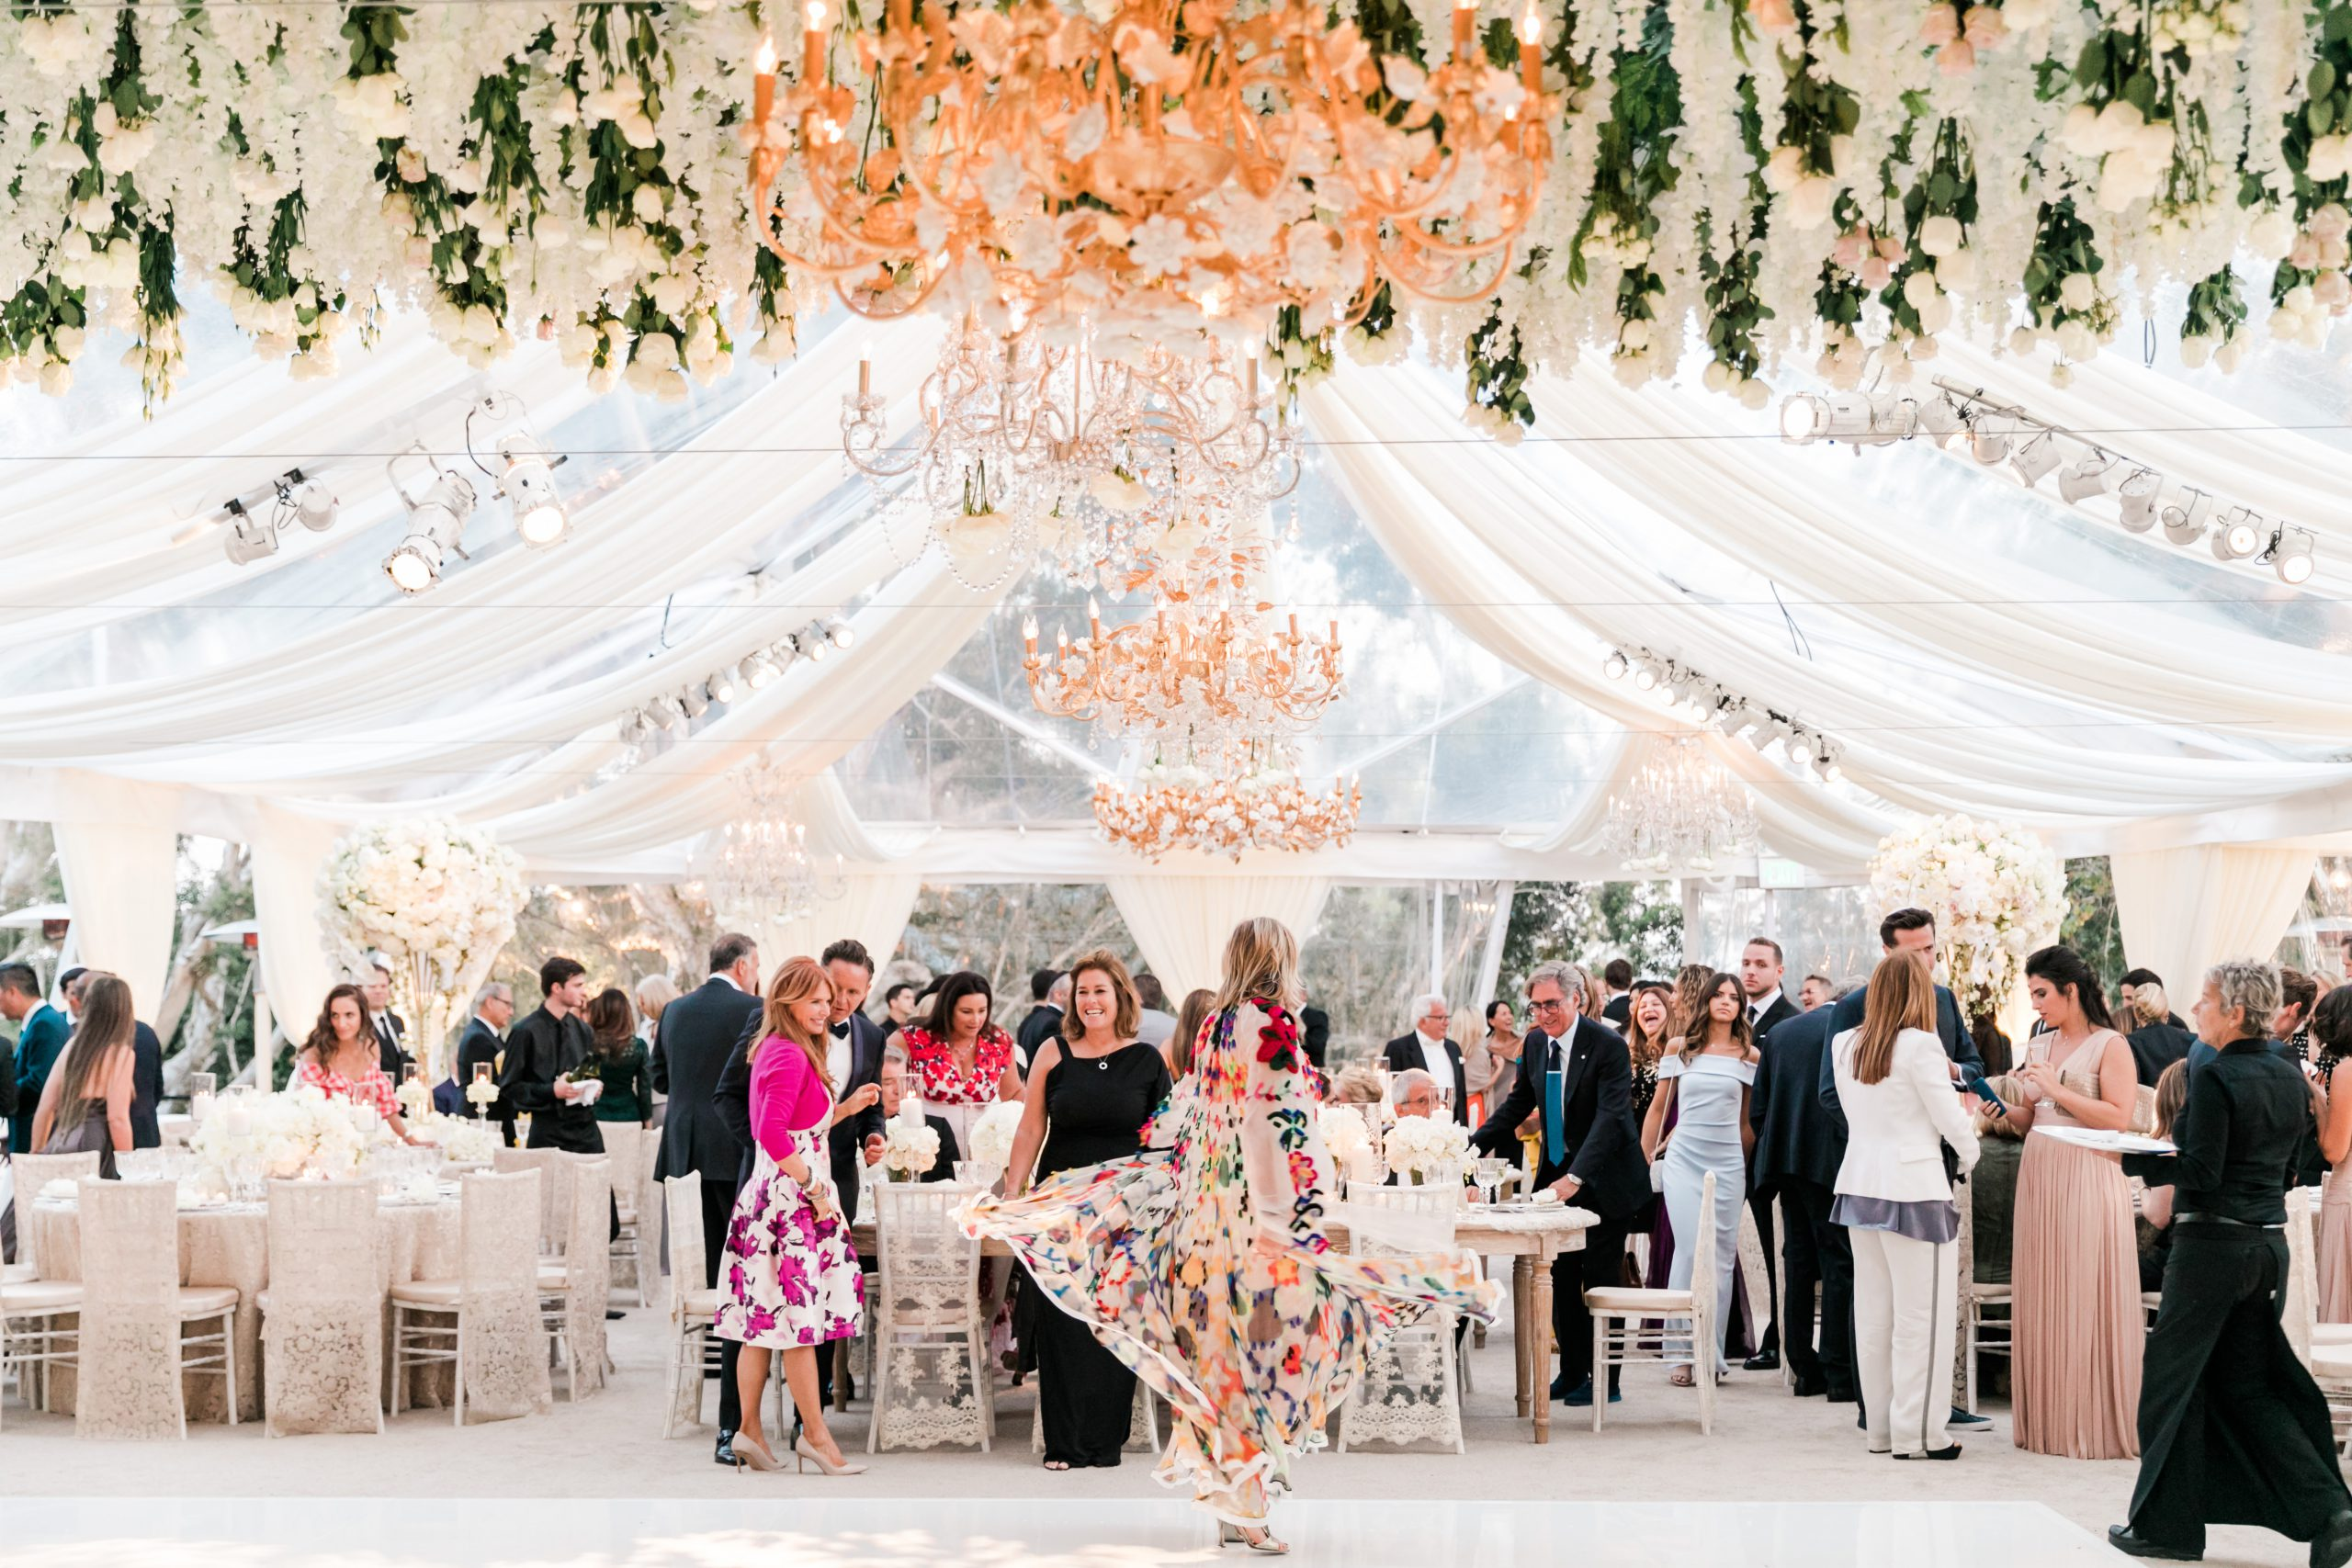 3 up and coming wedding trends